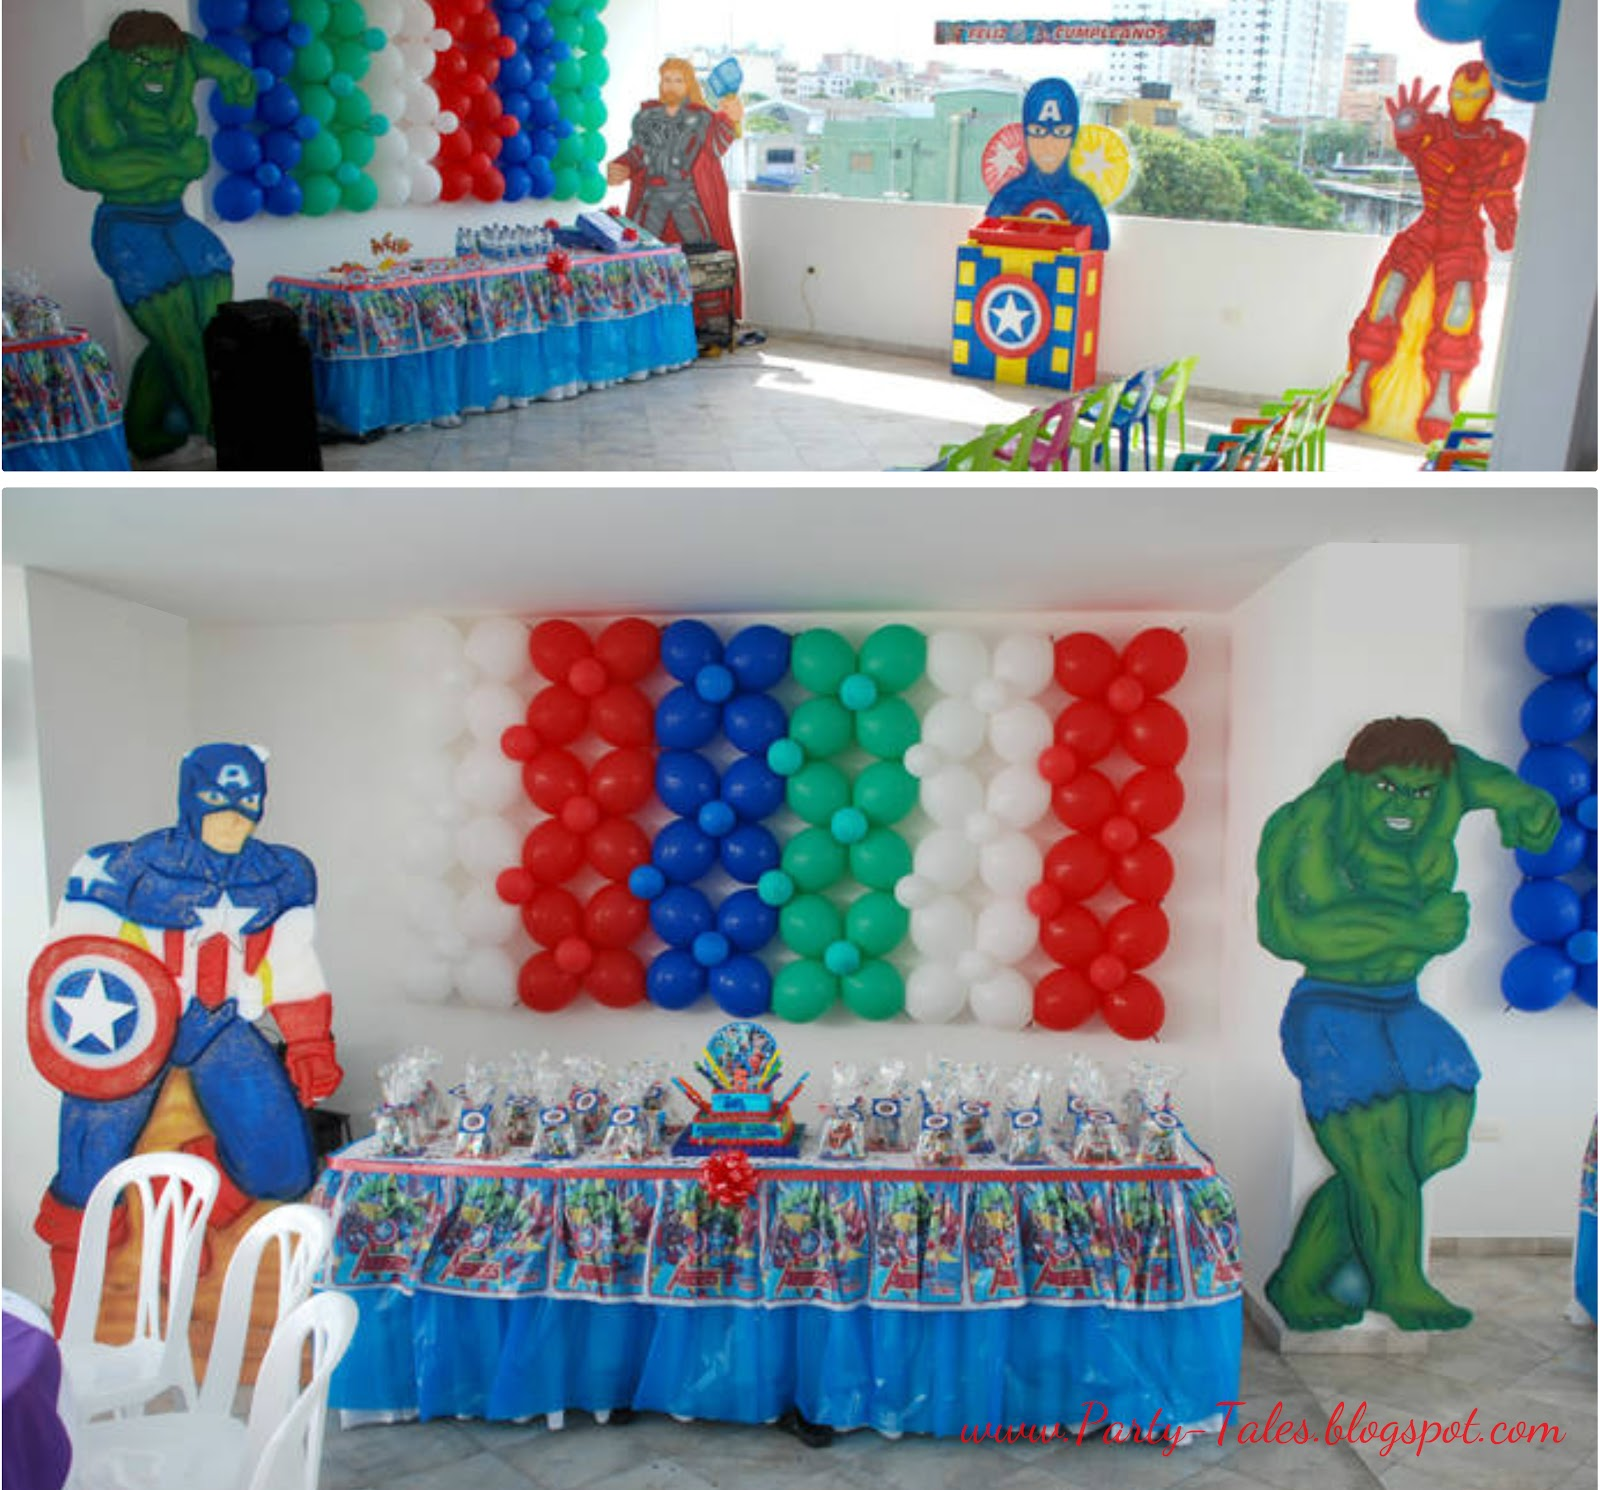 Party tales birthday party the avengers for Decoration ideas